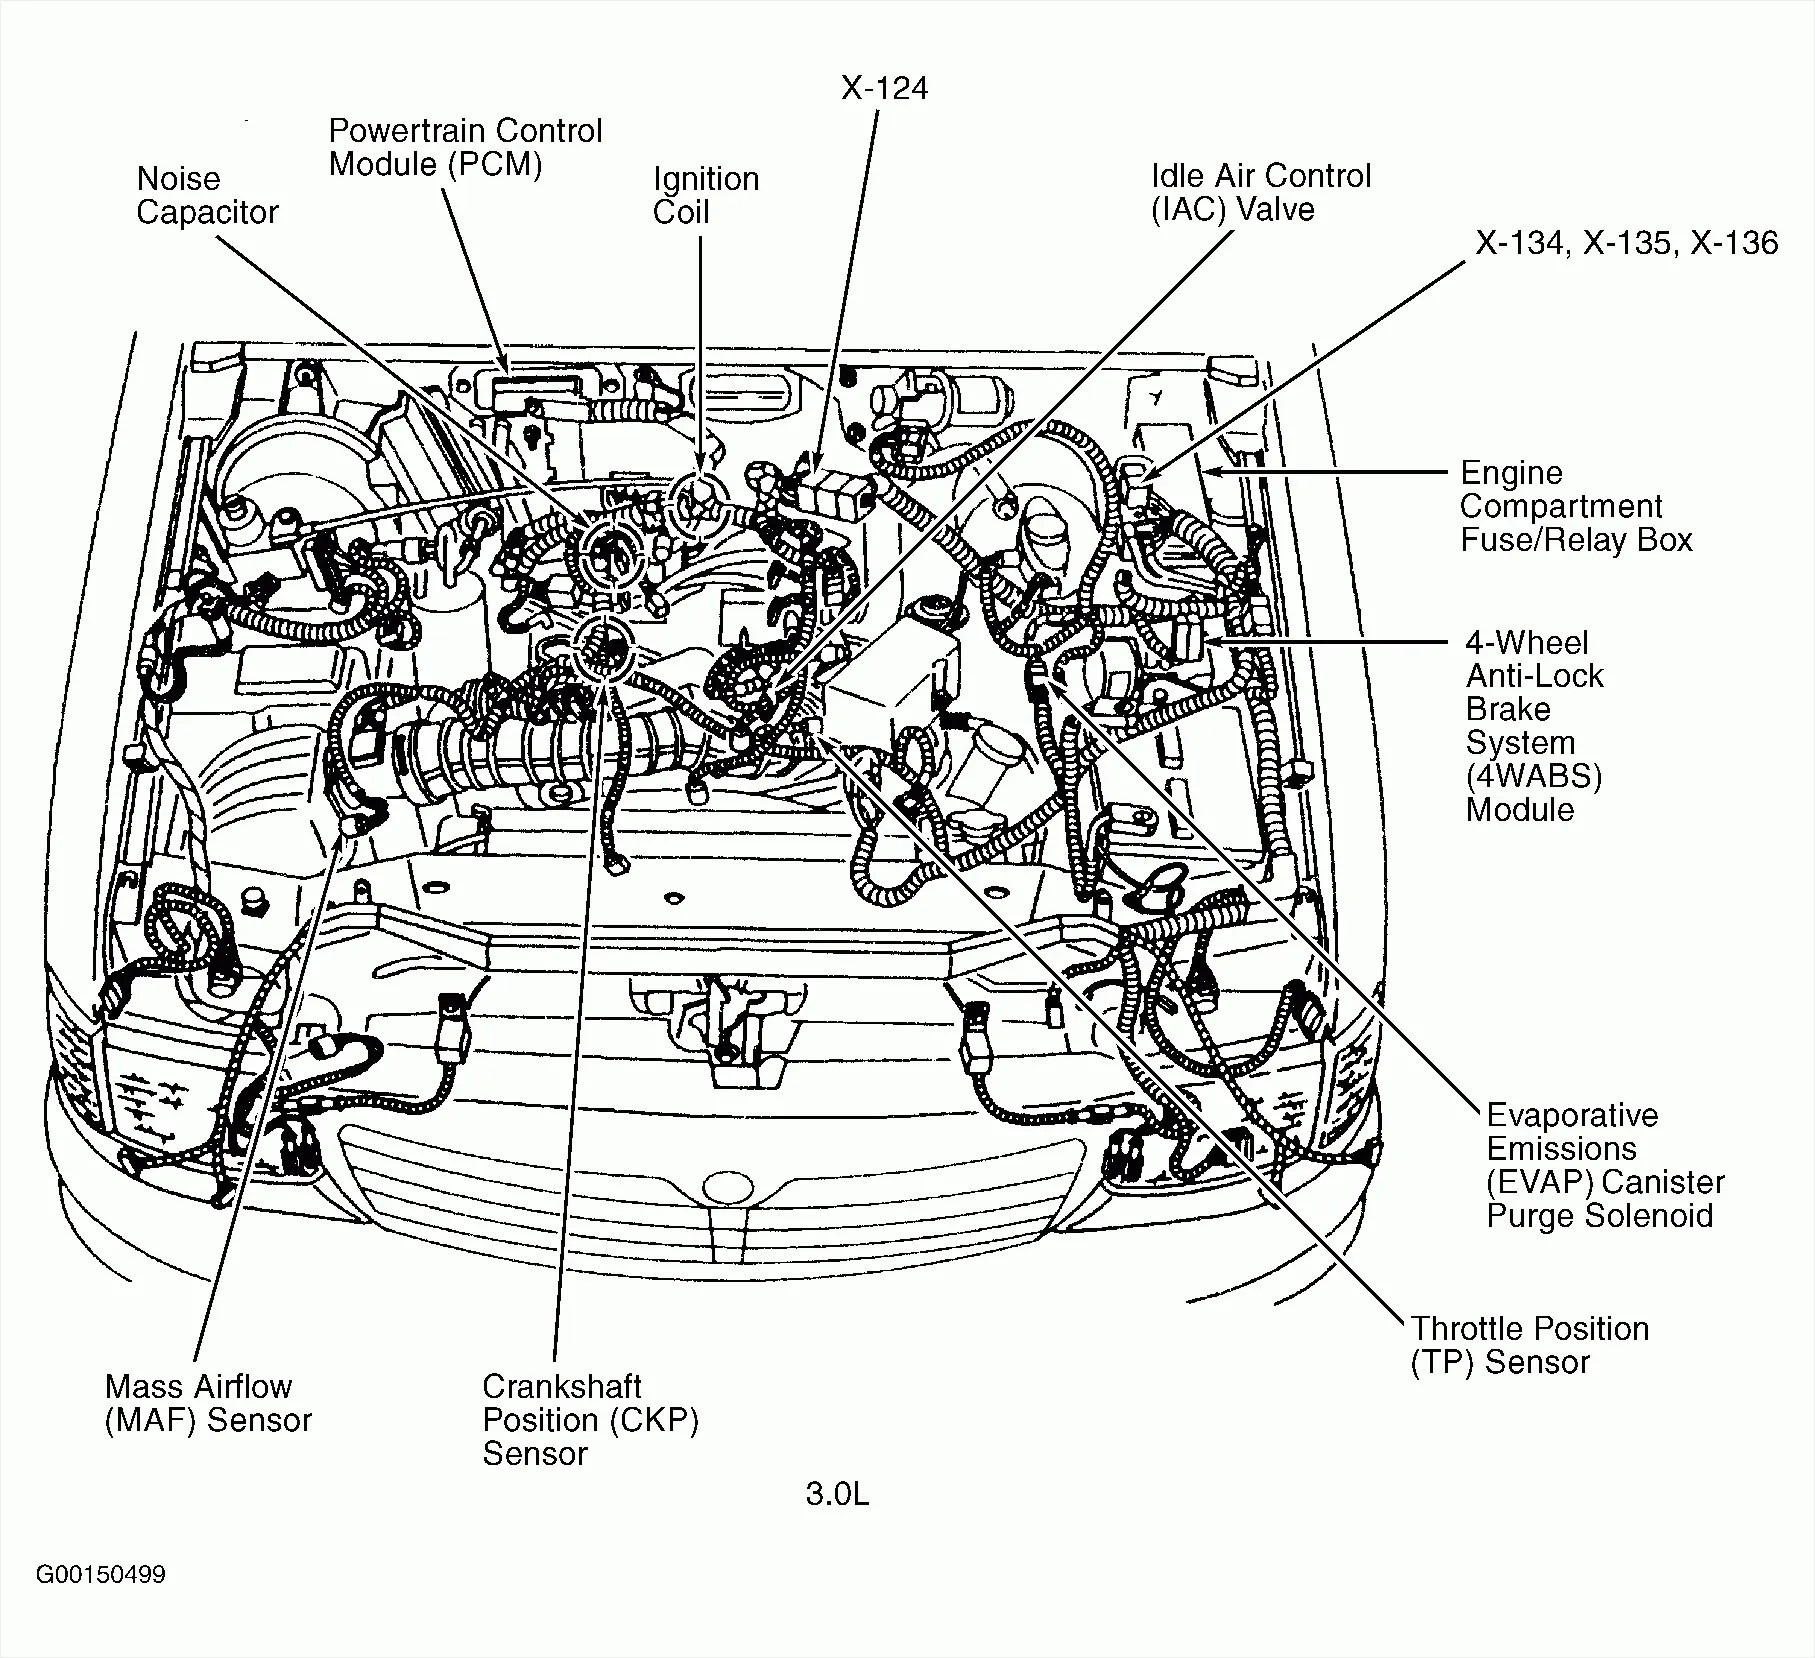 ford 7 5 truck engine diagram wiring diagram database ford 7 5 truck engine diagram wiring [ 1815 x 1658 Pixel ]